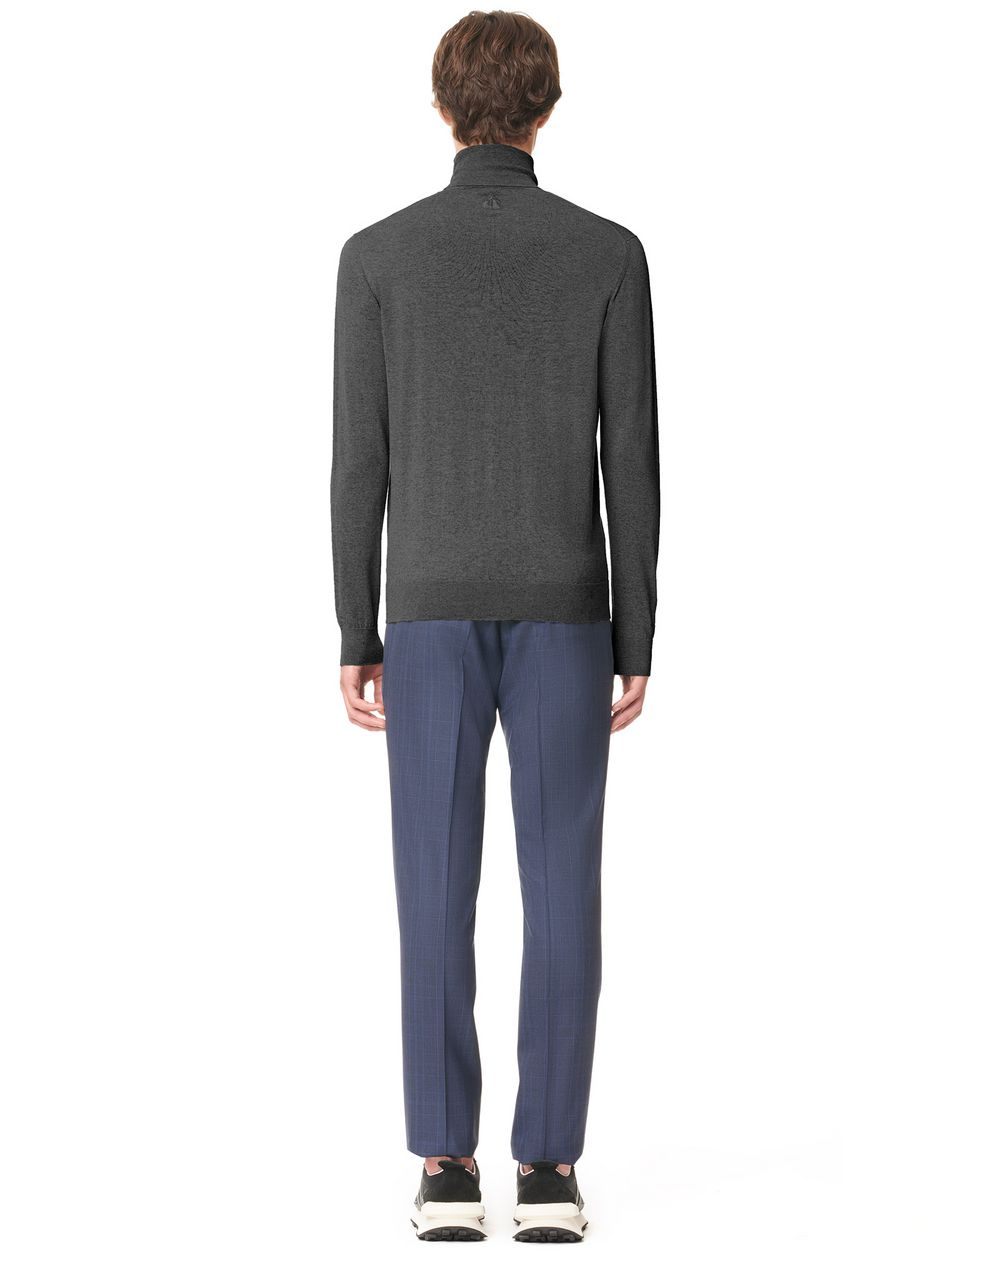 CASHMERE KNITTED TURTLE NECK SWEATER - Lanvin